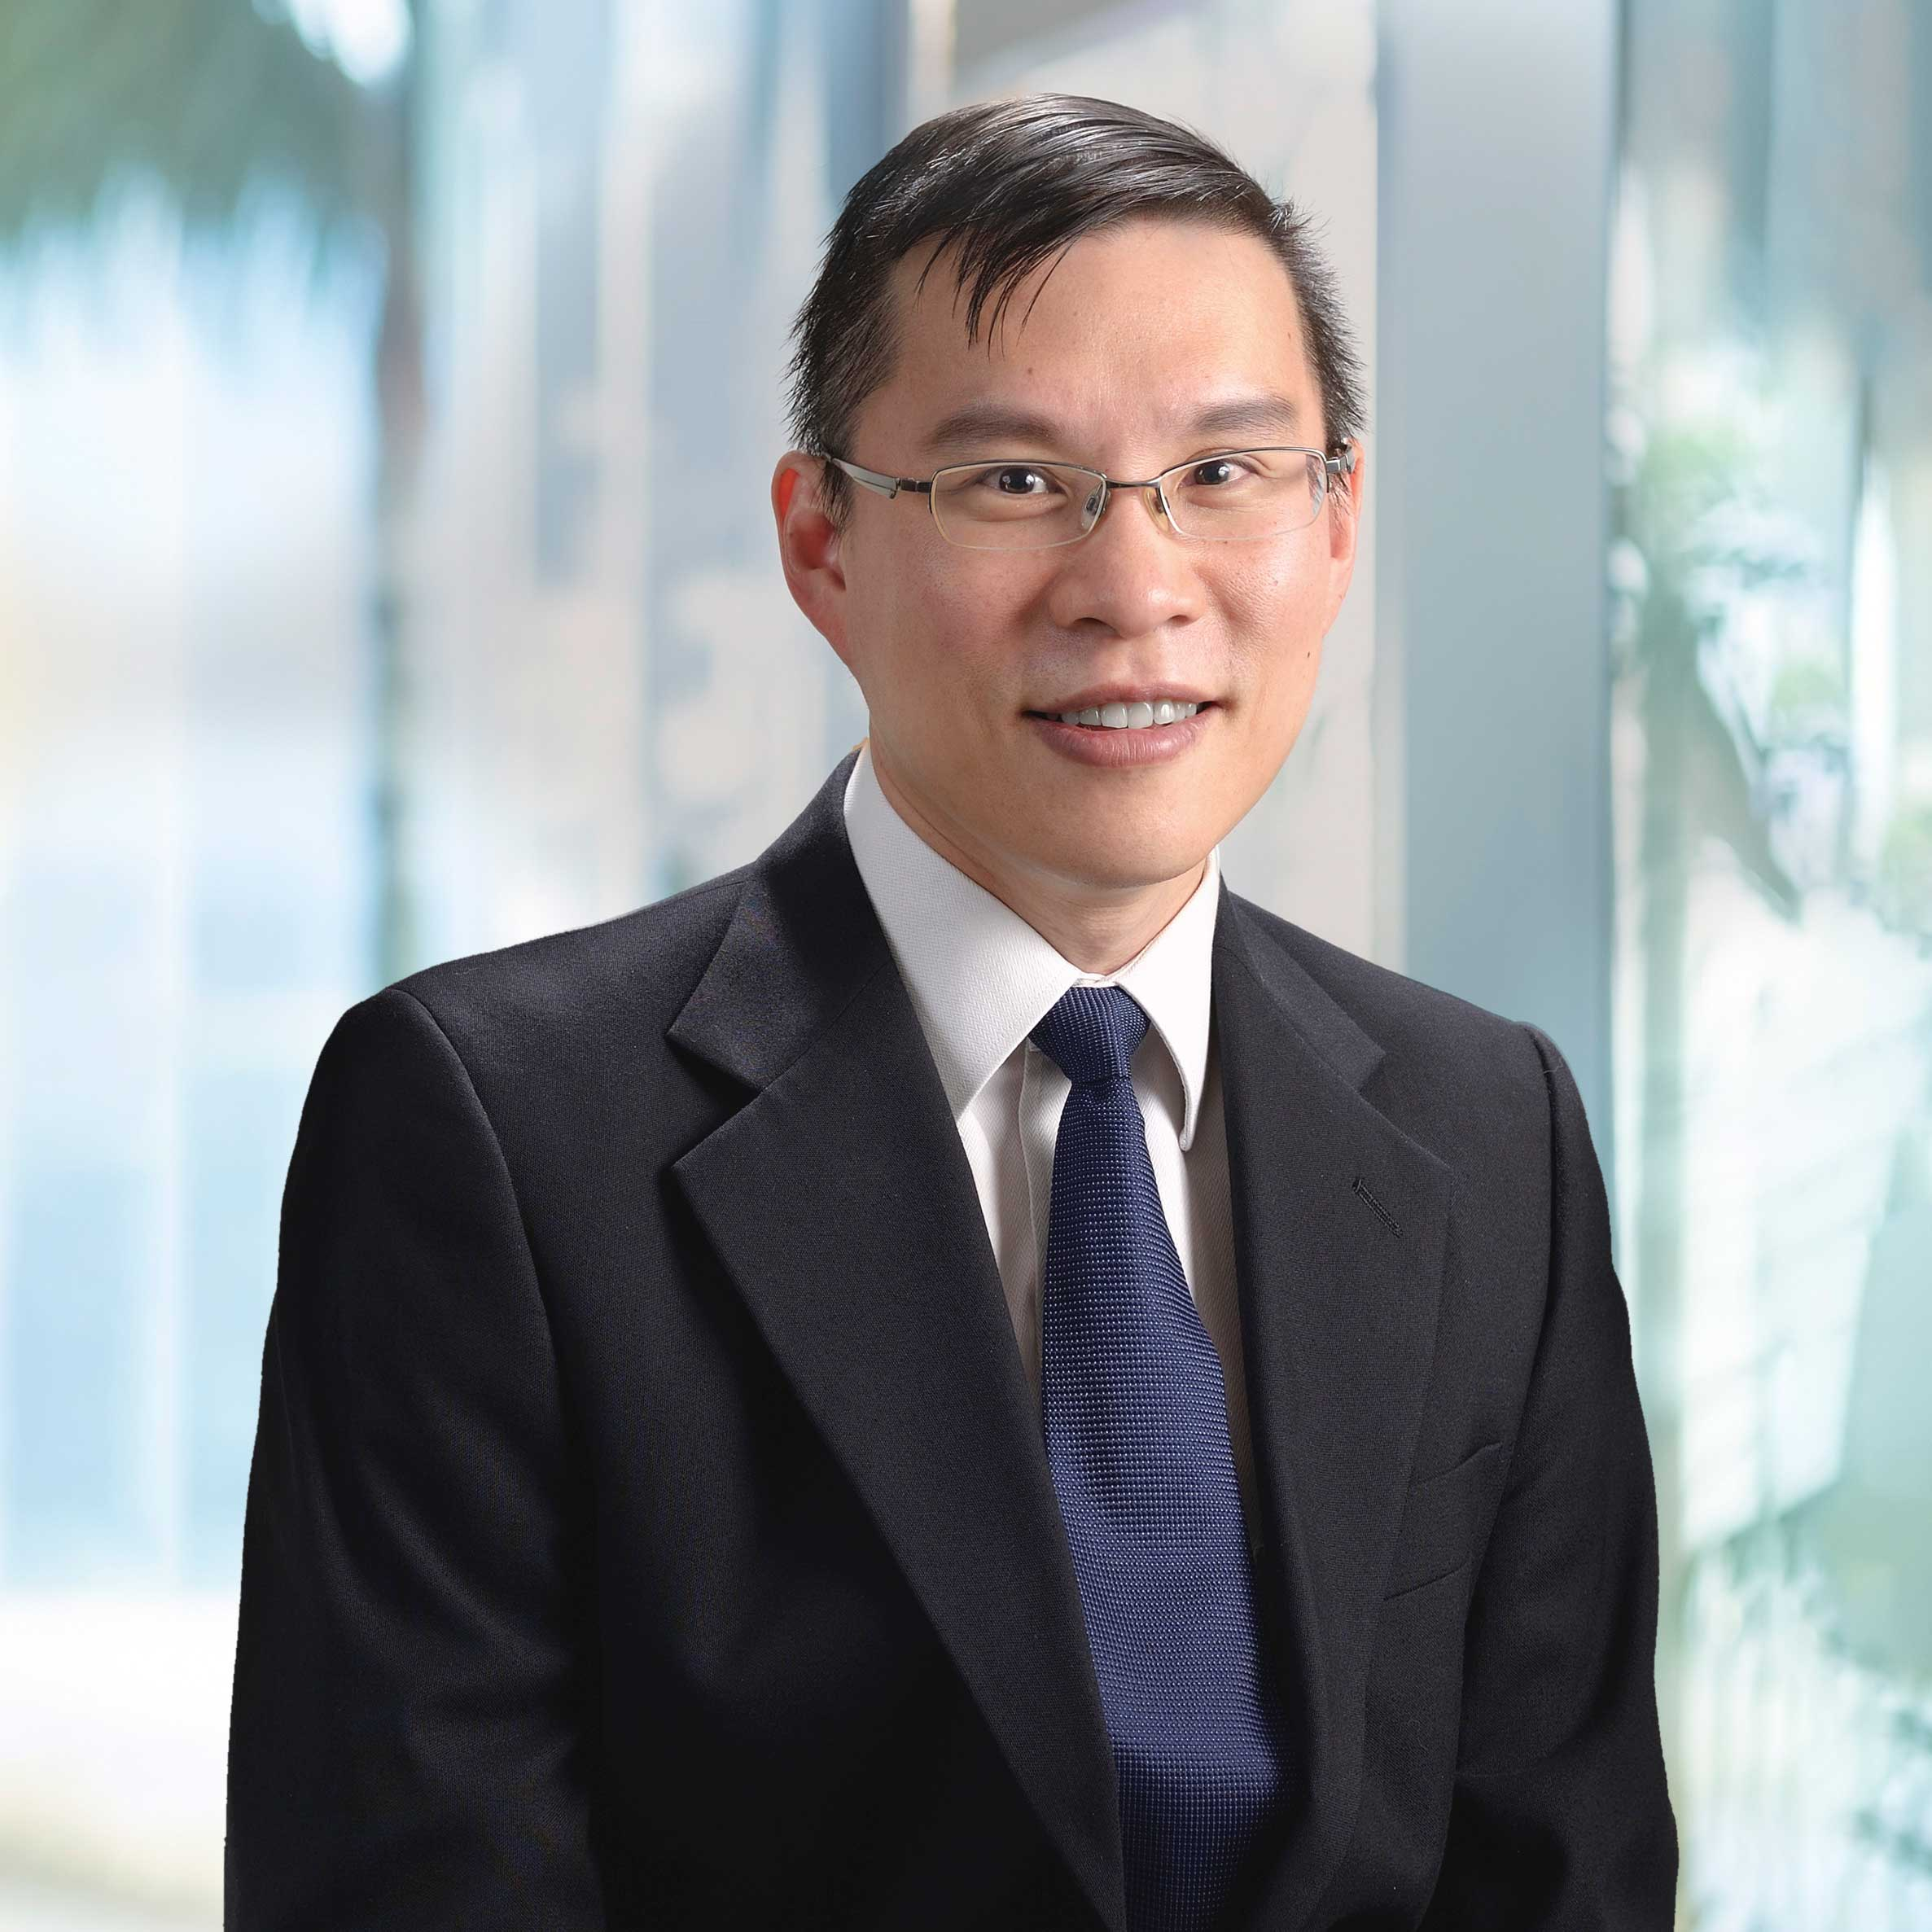 Dr. Liew Woei Kang - Paediatrician